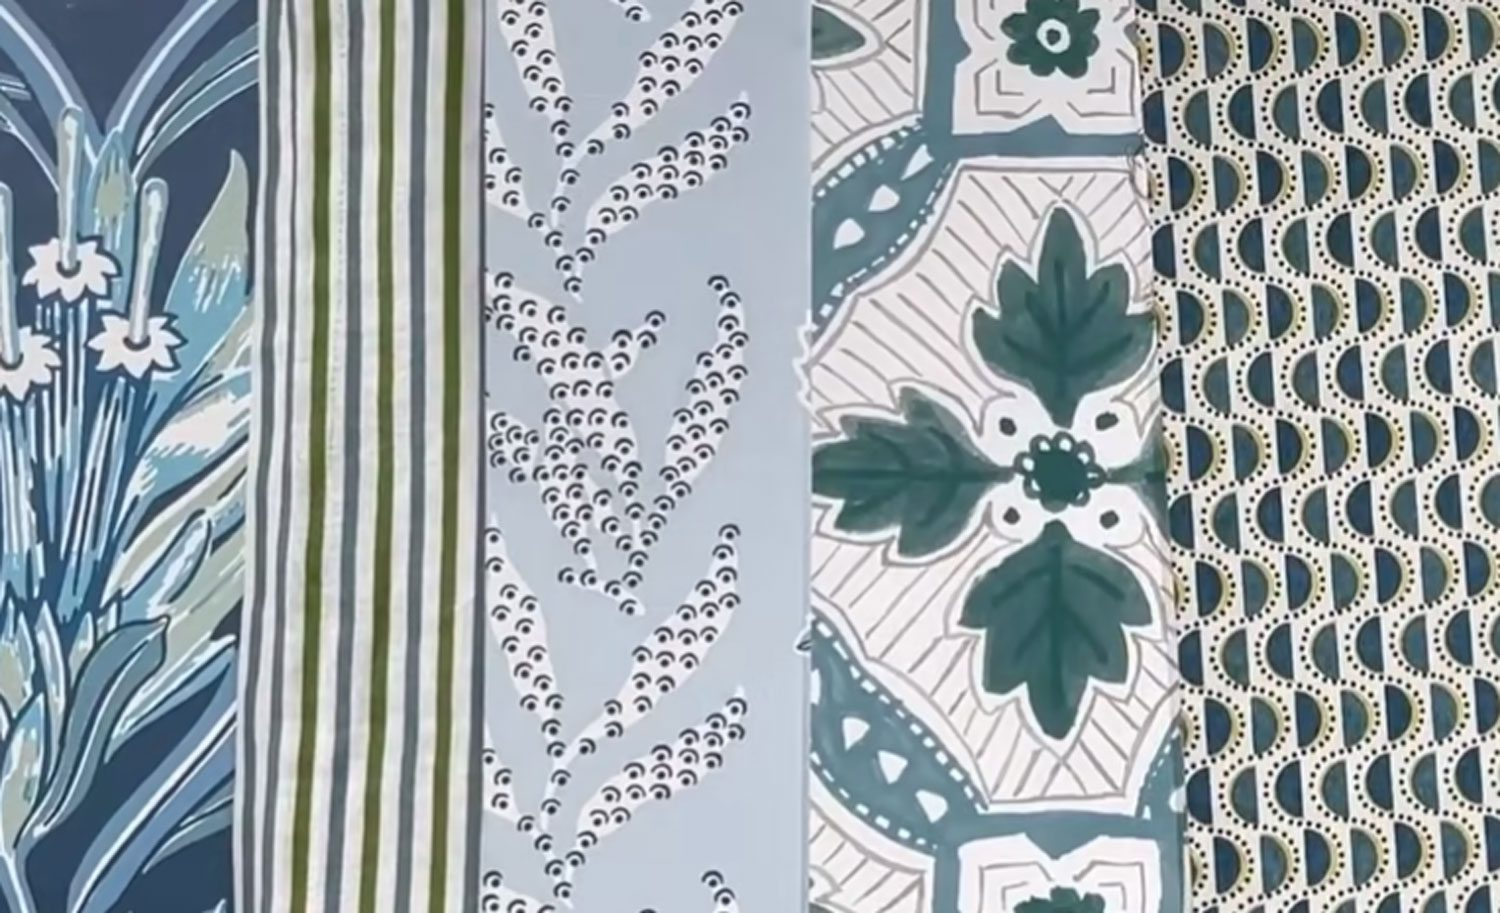 Textiles in subtle patterns of earthy neutrals.